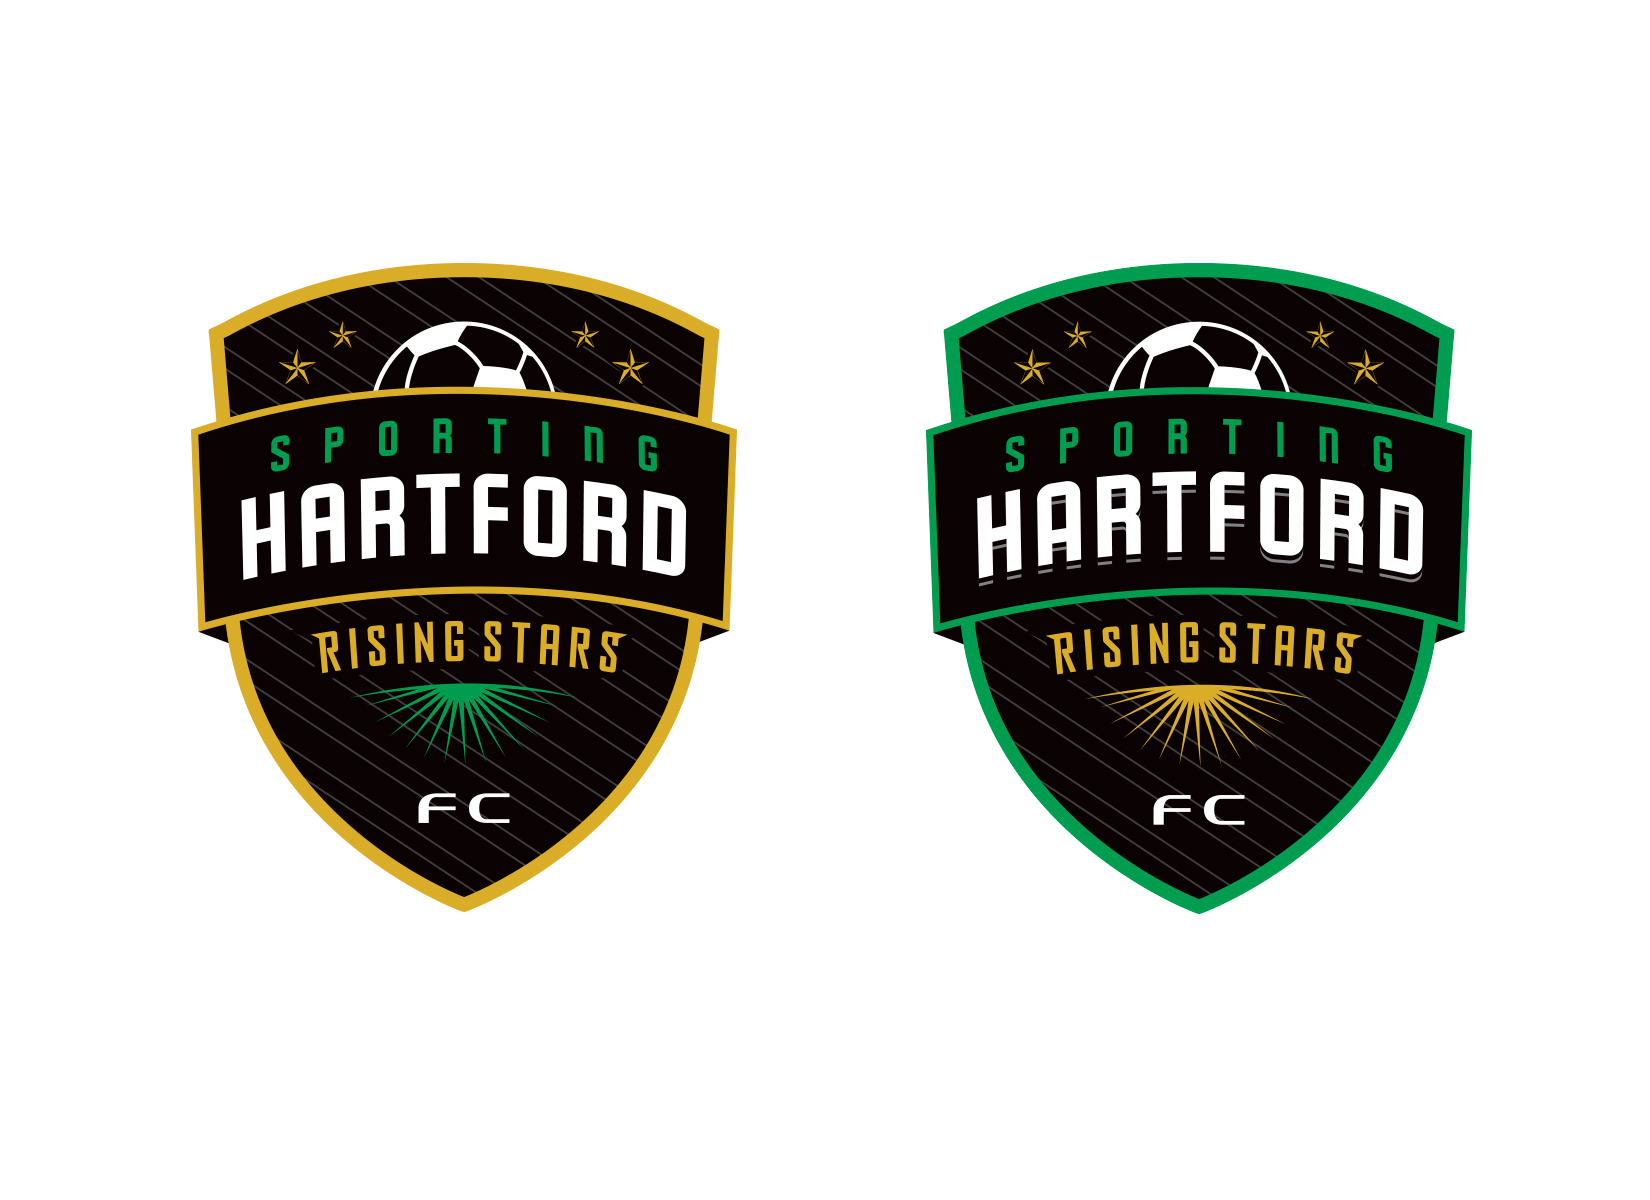 custom-soccer-logo-designs-by-jordan-fretz-for-sporting-hartford-fc.jpg